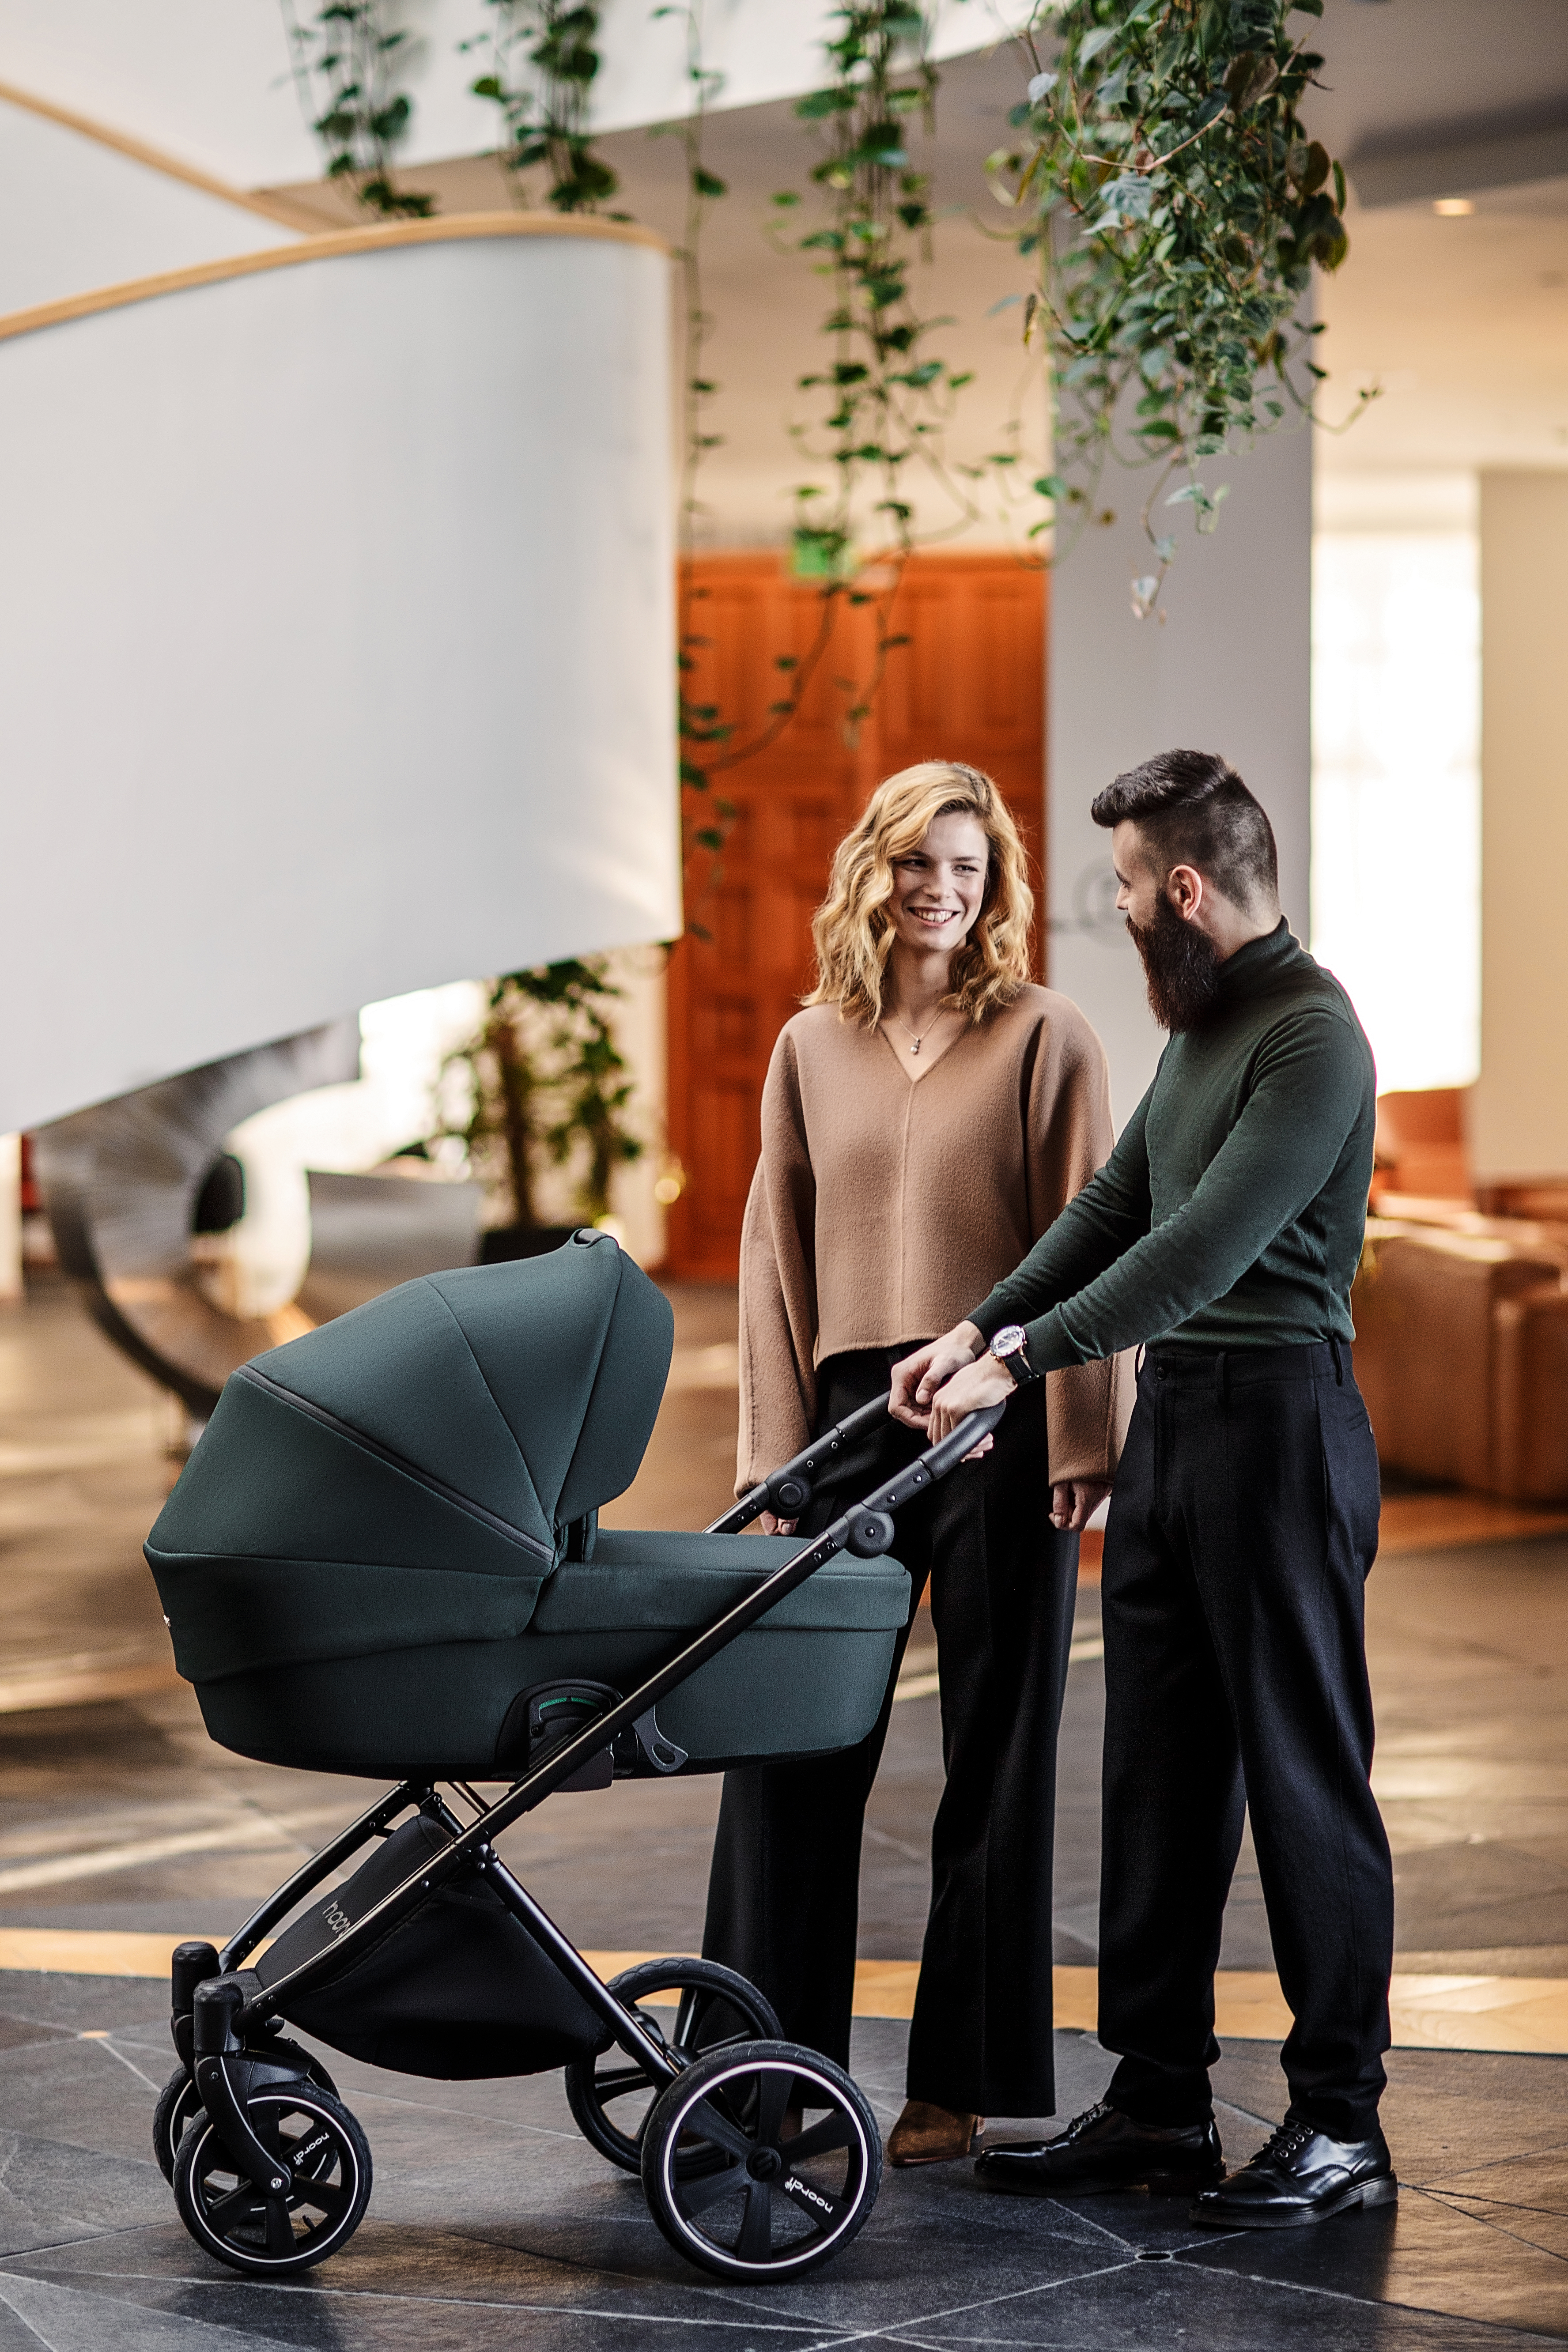 noordi luno 3 in 1 forest green travel system